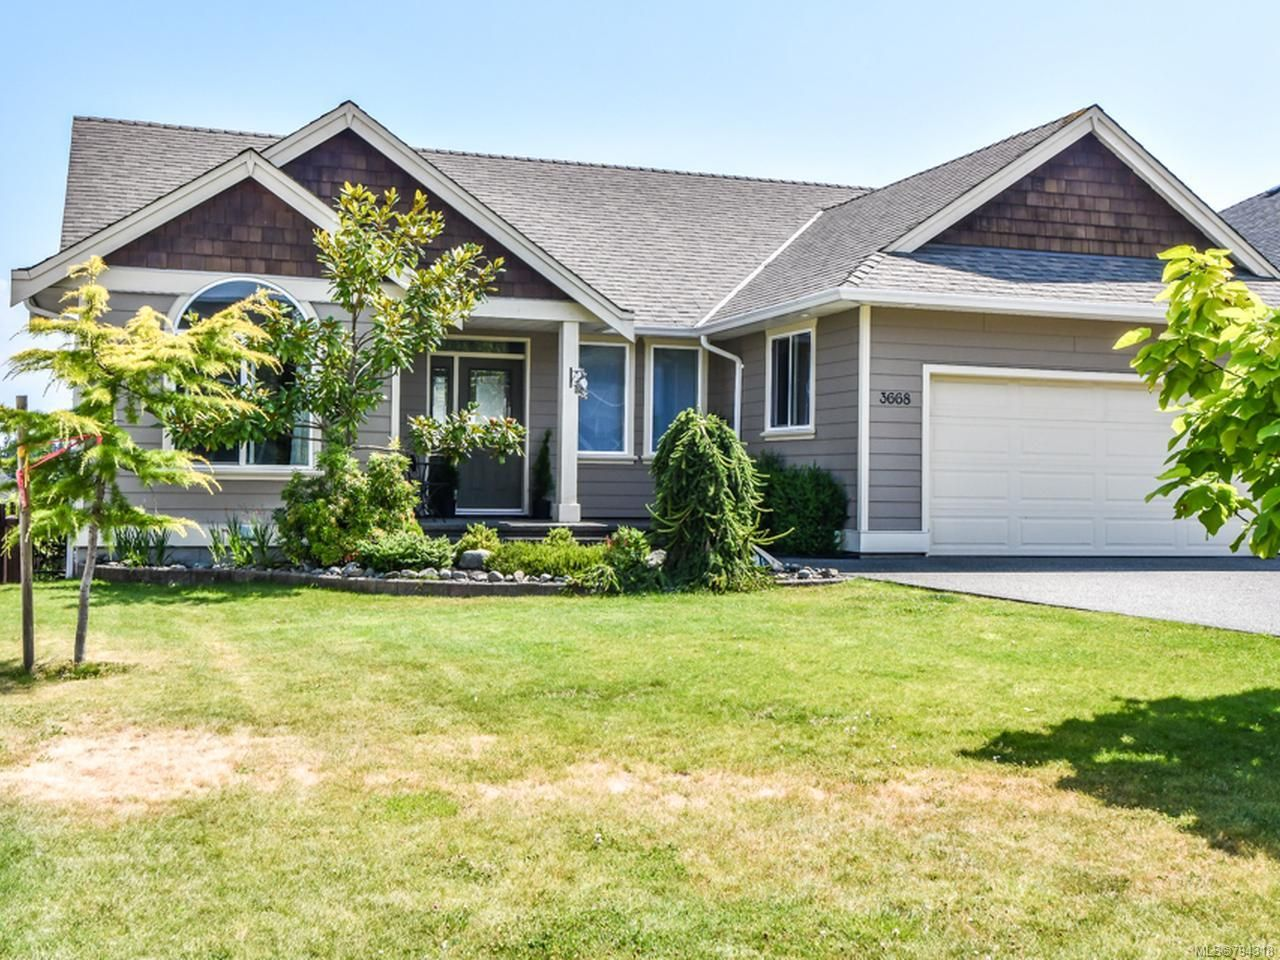 Main Photo: 3668 VERMONT PLACE in CAMPBELL RIVER: CR Willow Point House for sale (Campbell River)  : MLS®# 794318